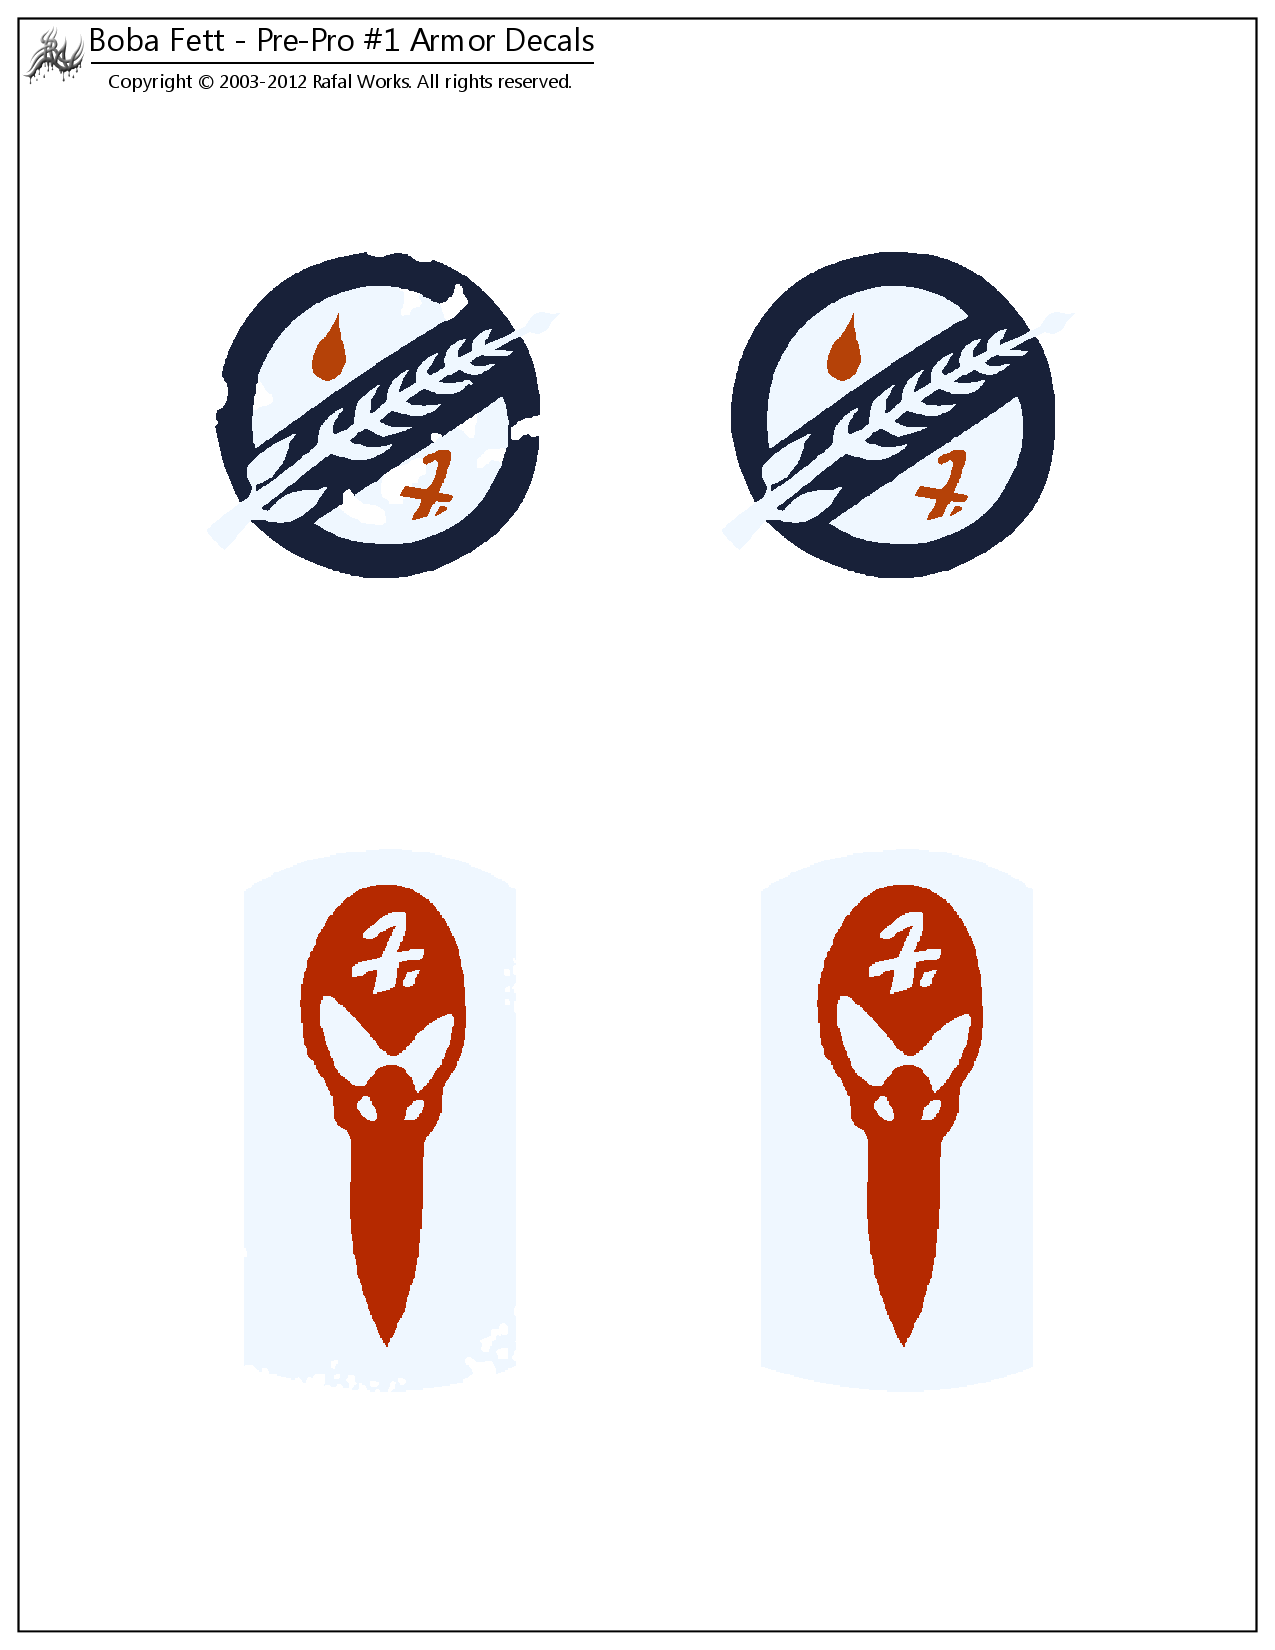 PP1 Armor Decals LTR.png